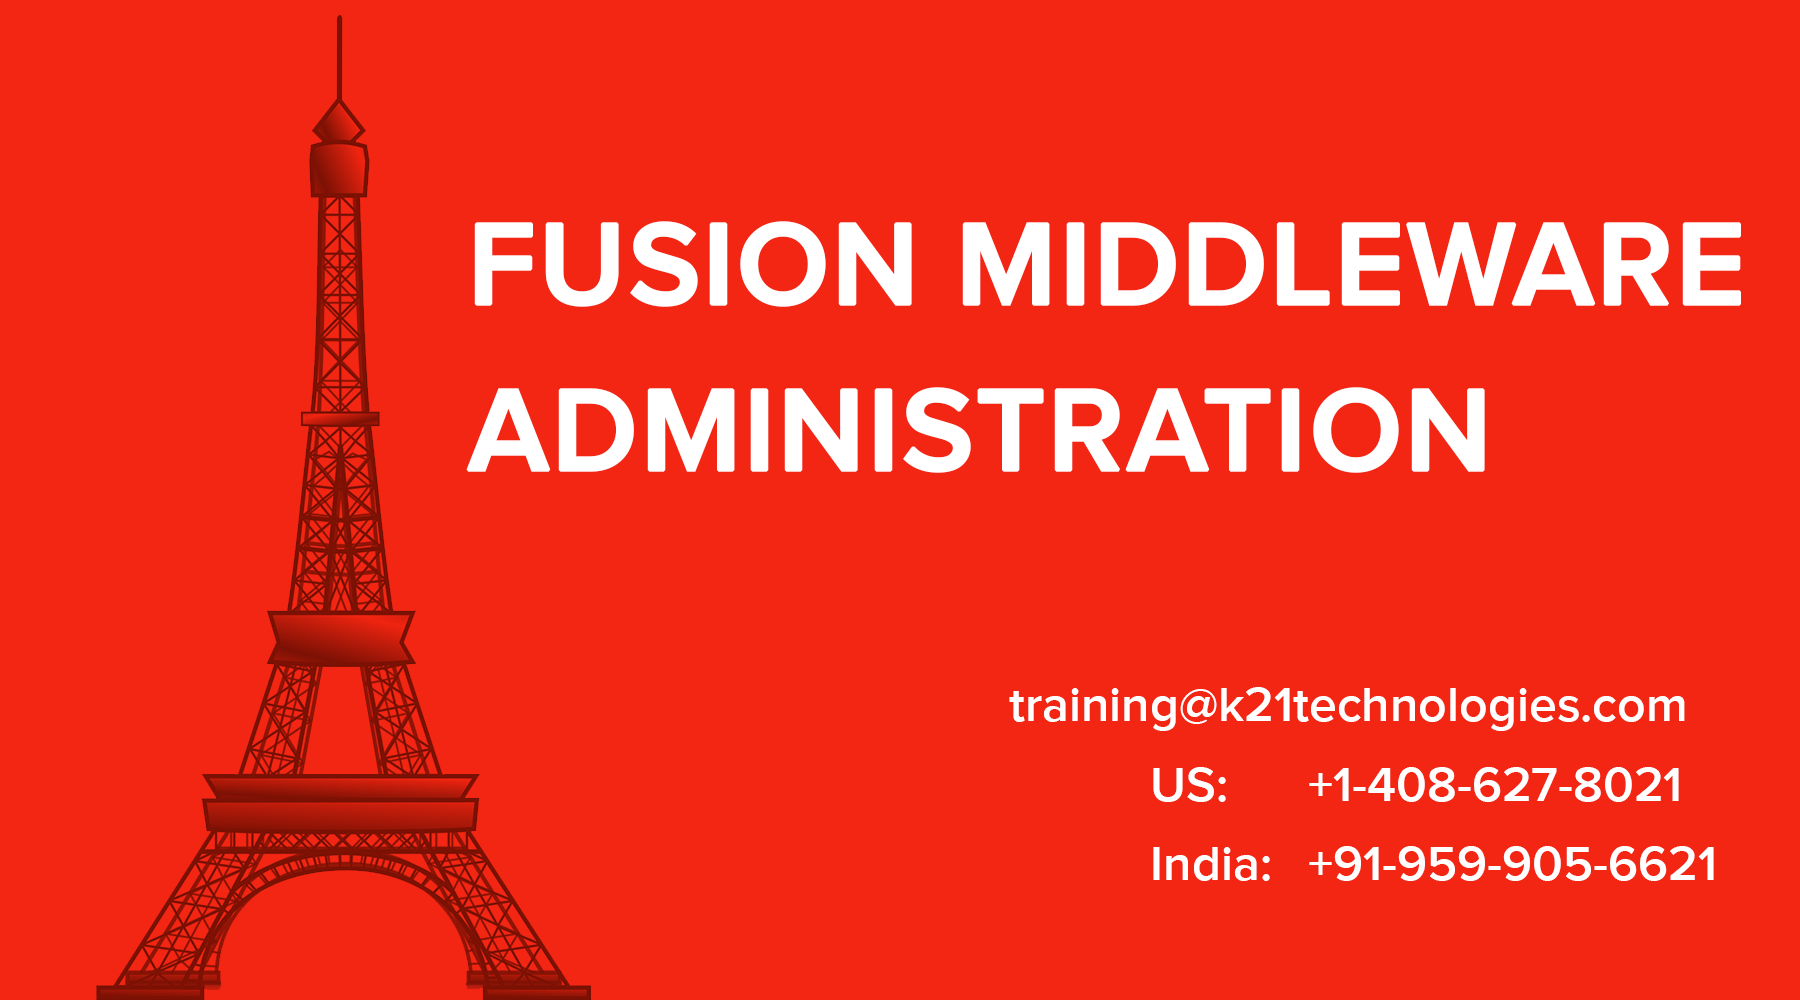 Oracle fusion middleware fmw training course for oracle apps dba heres exactly what youll get inside oracle fusion middleware course baditri Images